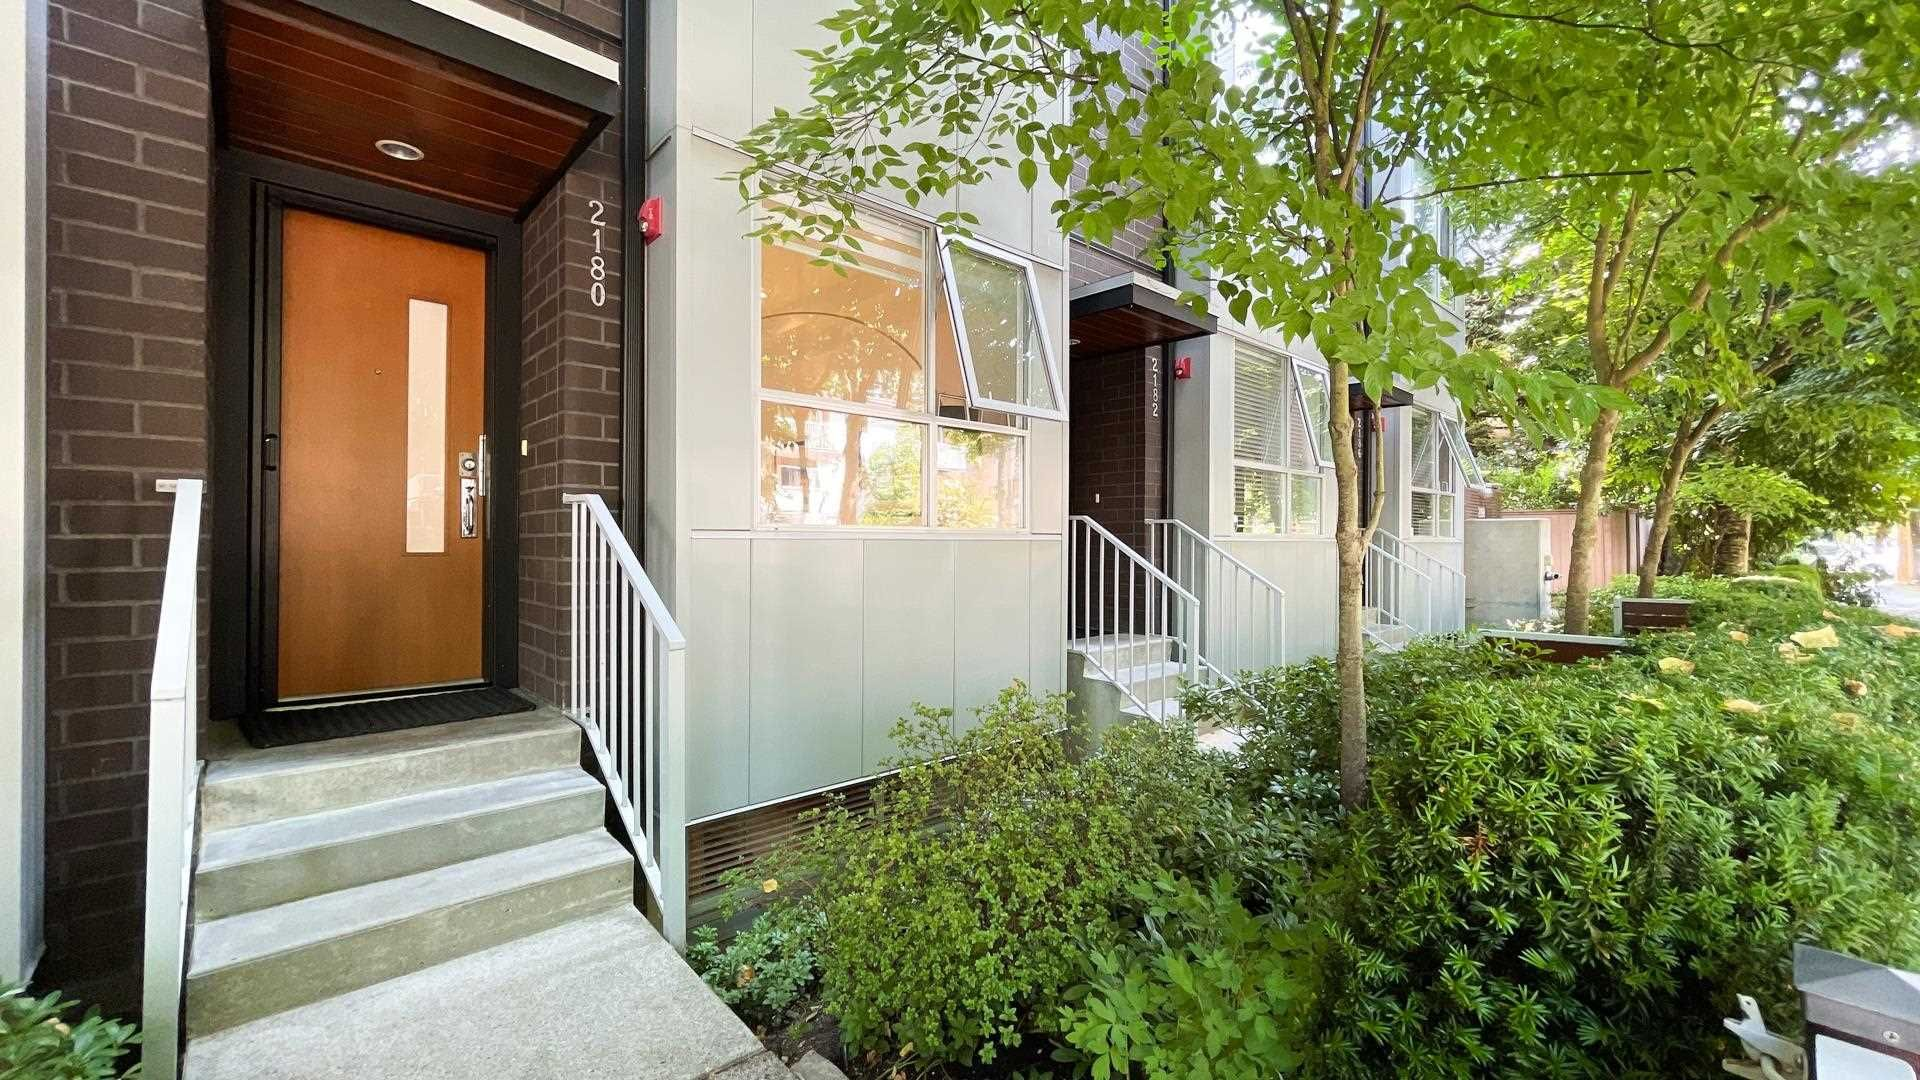 """Main Photo: 2180 W 8TH Avenue in Vancouver: Kitsilano Townhouse for sale in """"Canvas"""" (Vancouver West)  : MLS®# R2605836"""